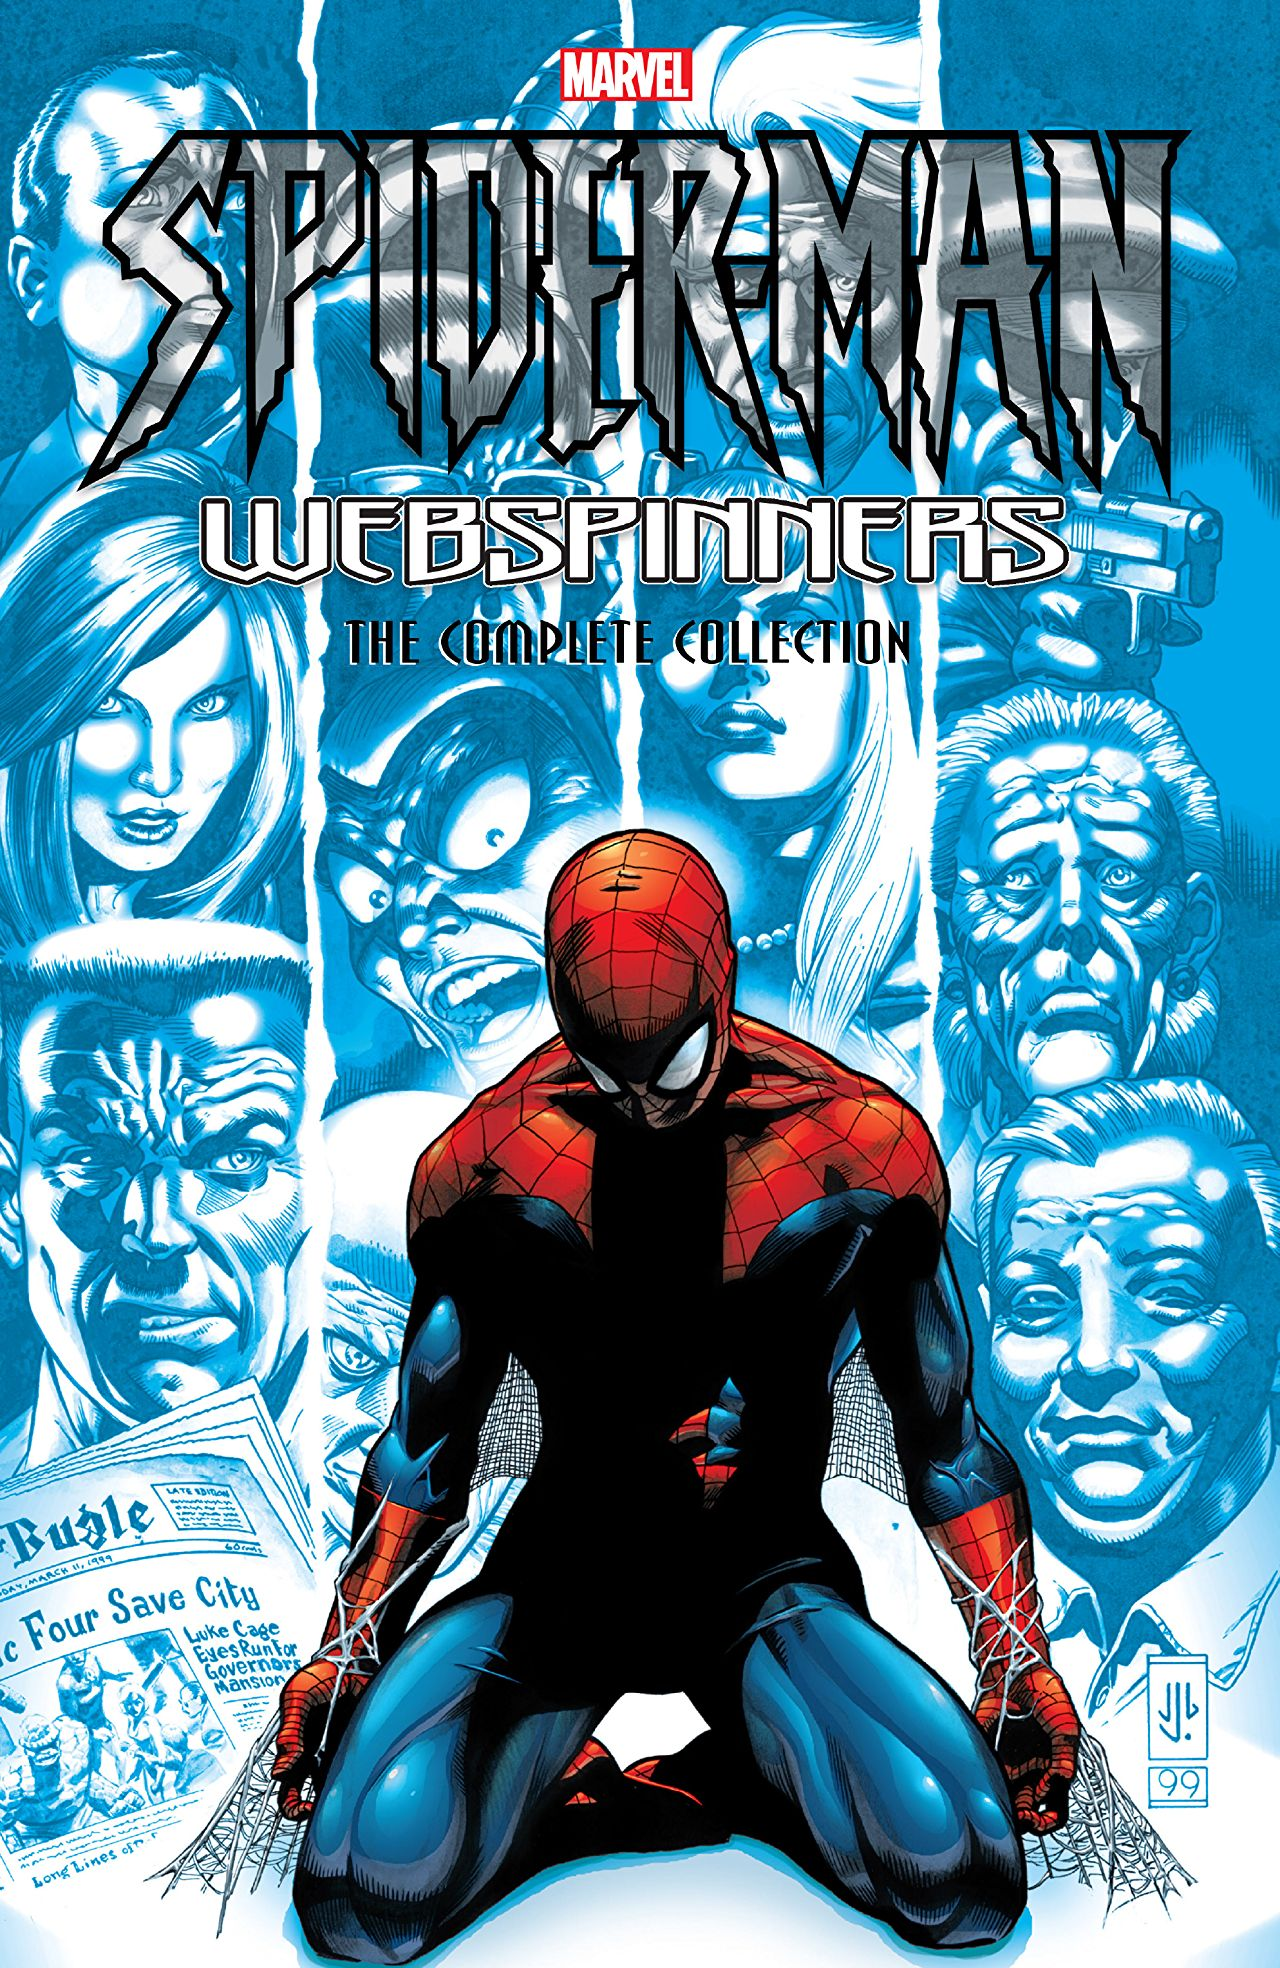 'Spider-Man Webspinners: The Complete Collection' is a mixed bag of tales for die-hard Spidey fans